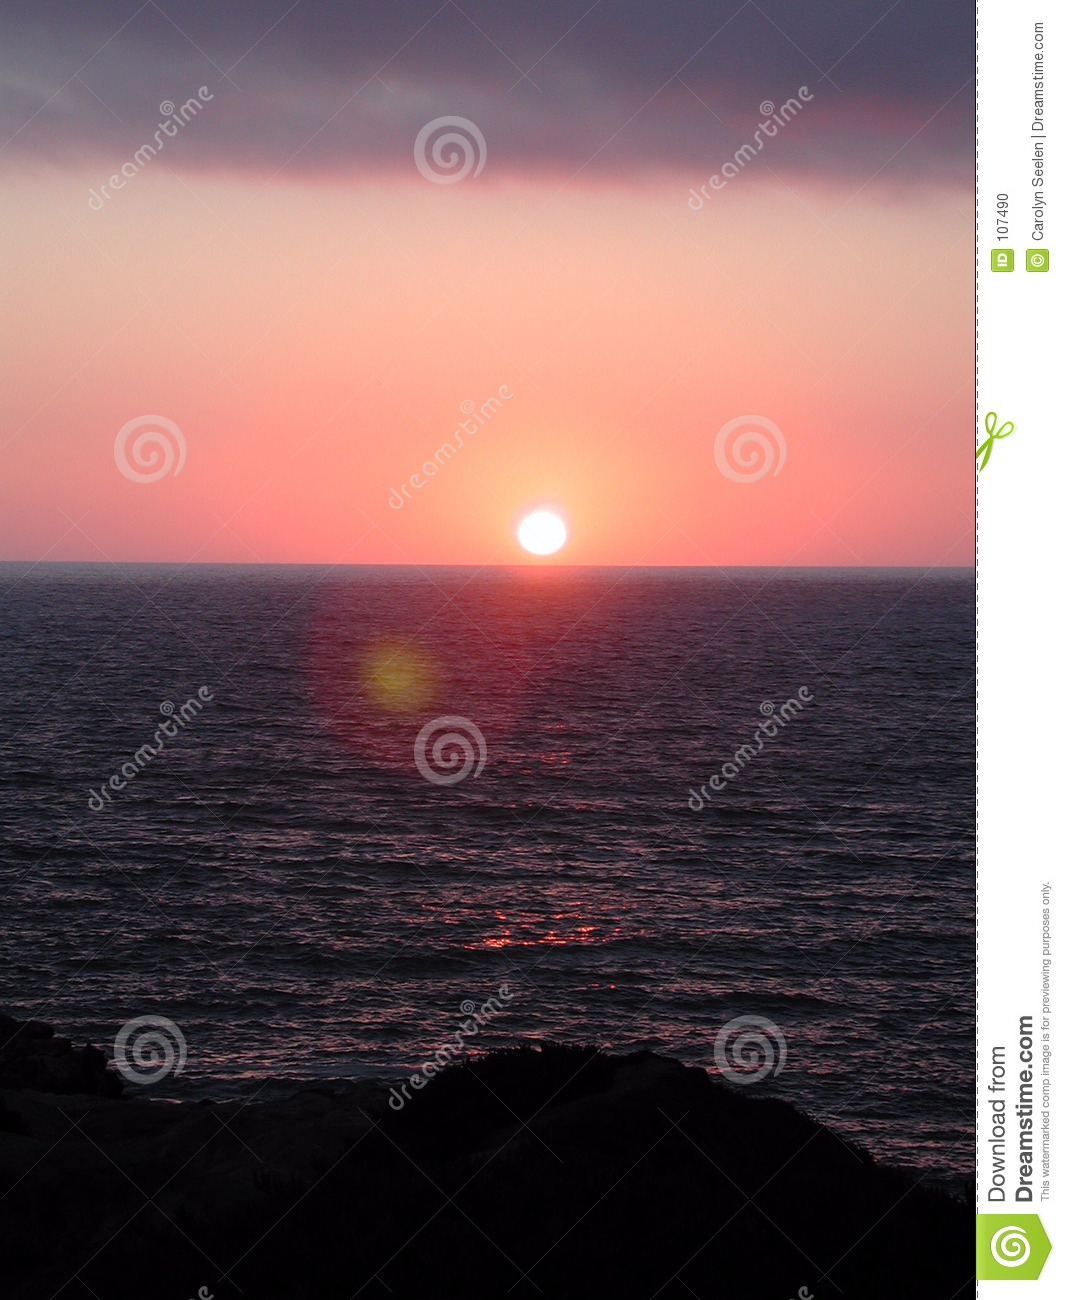 Download California Sunset stock photo. Image of northwest, ocean - 107490